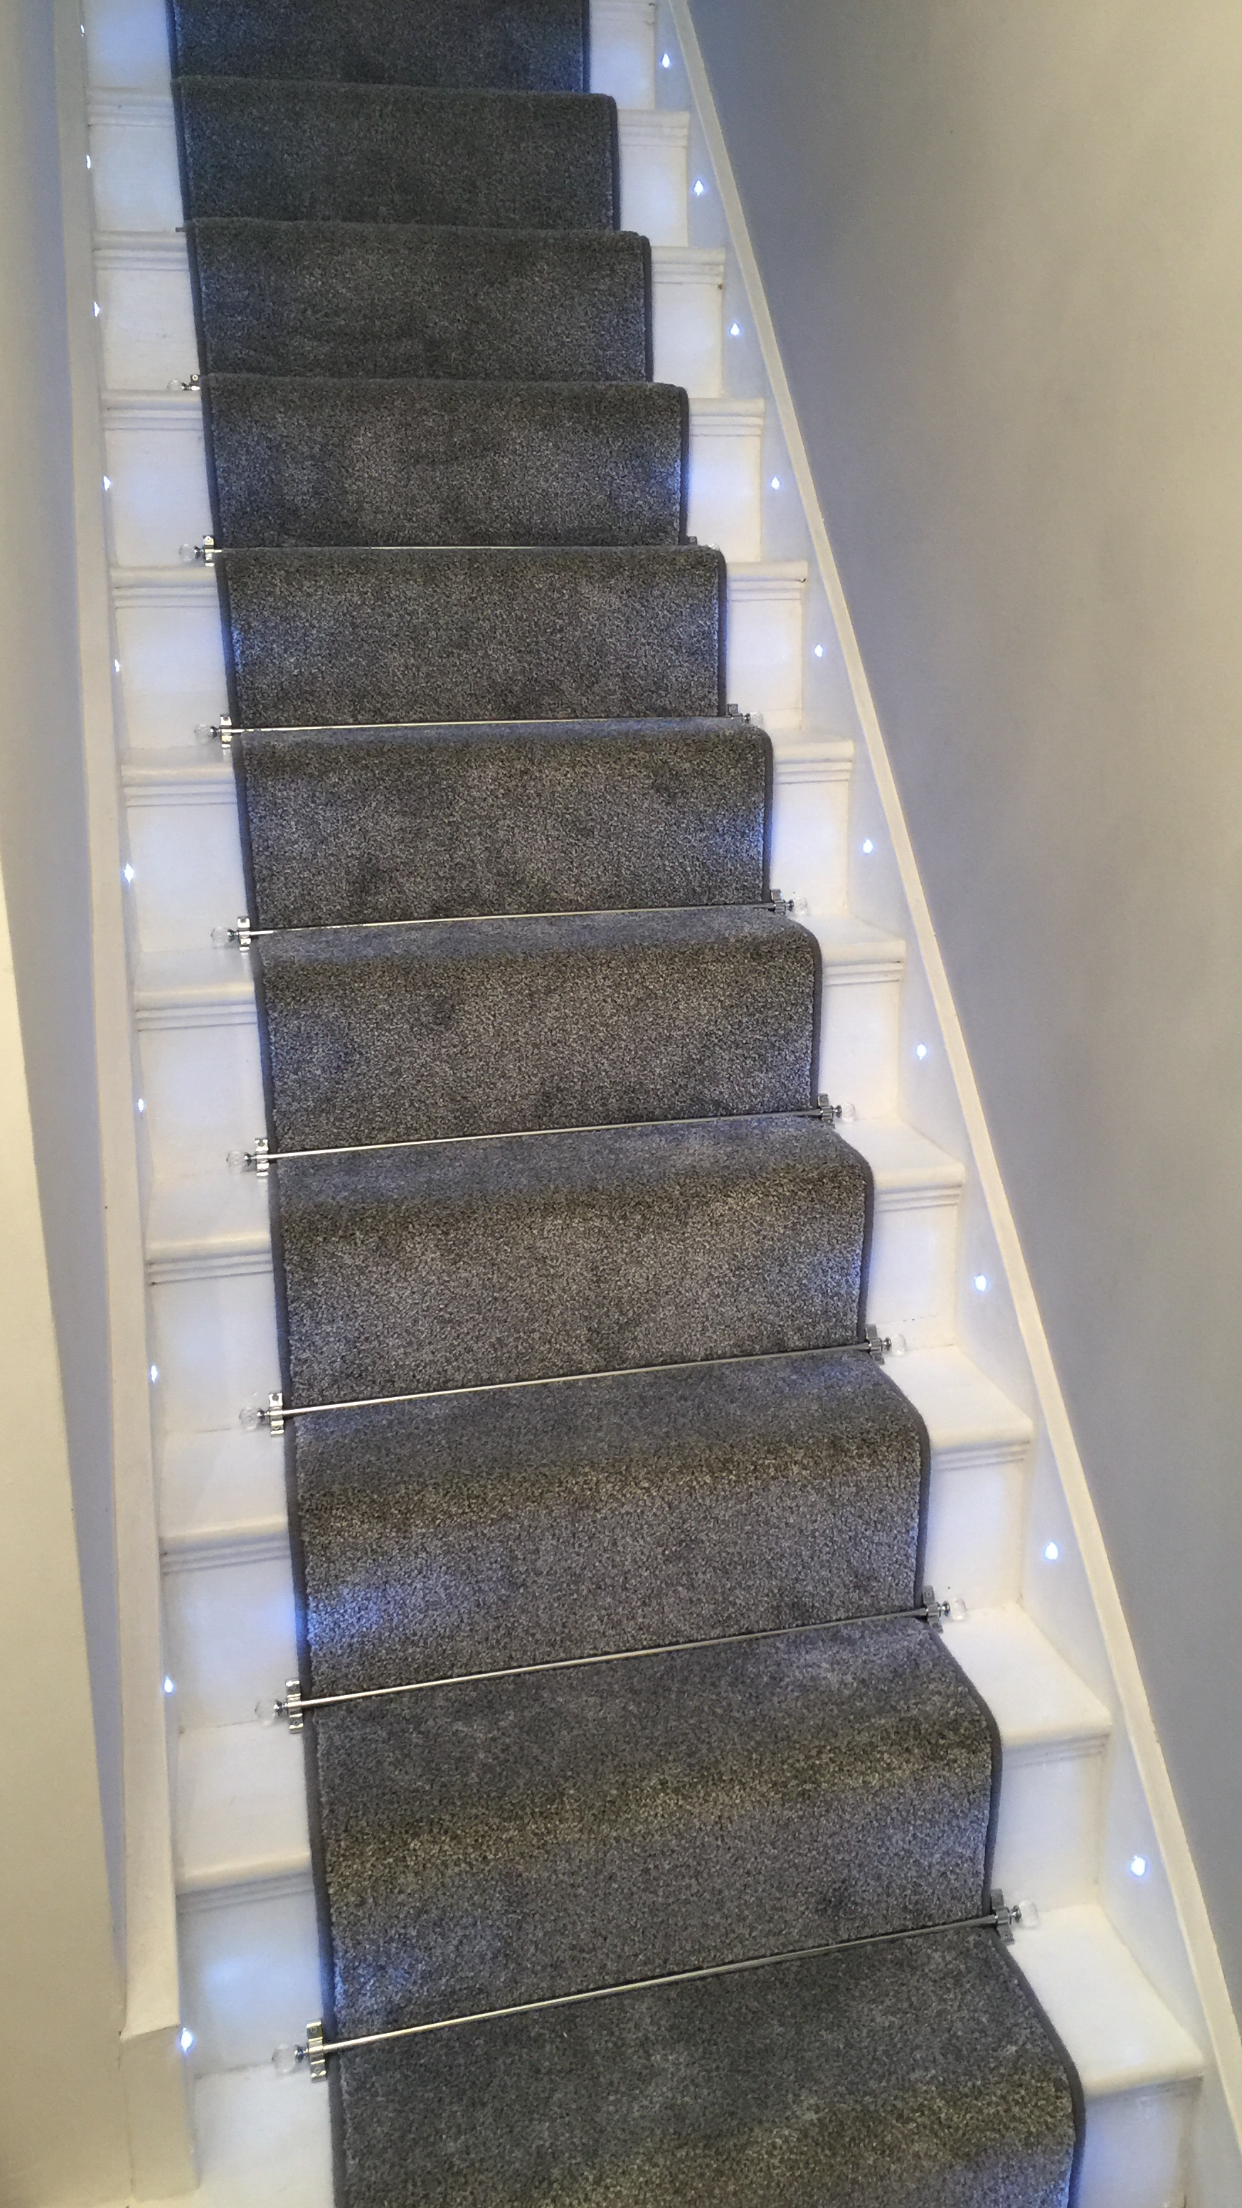 Great Stair Idea   Grey Carpet Runner, Stair Rods, Stair Lights ❤️